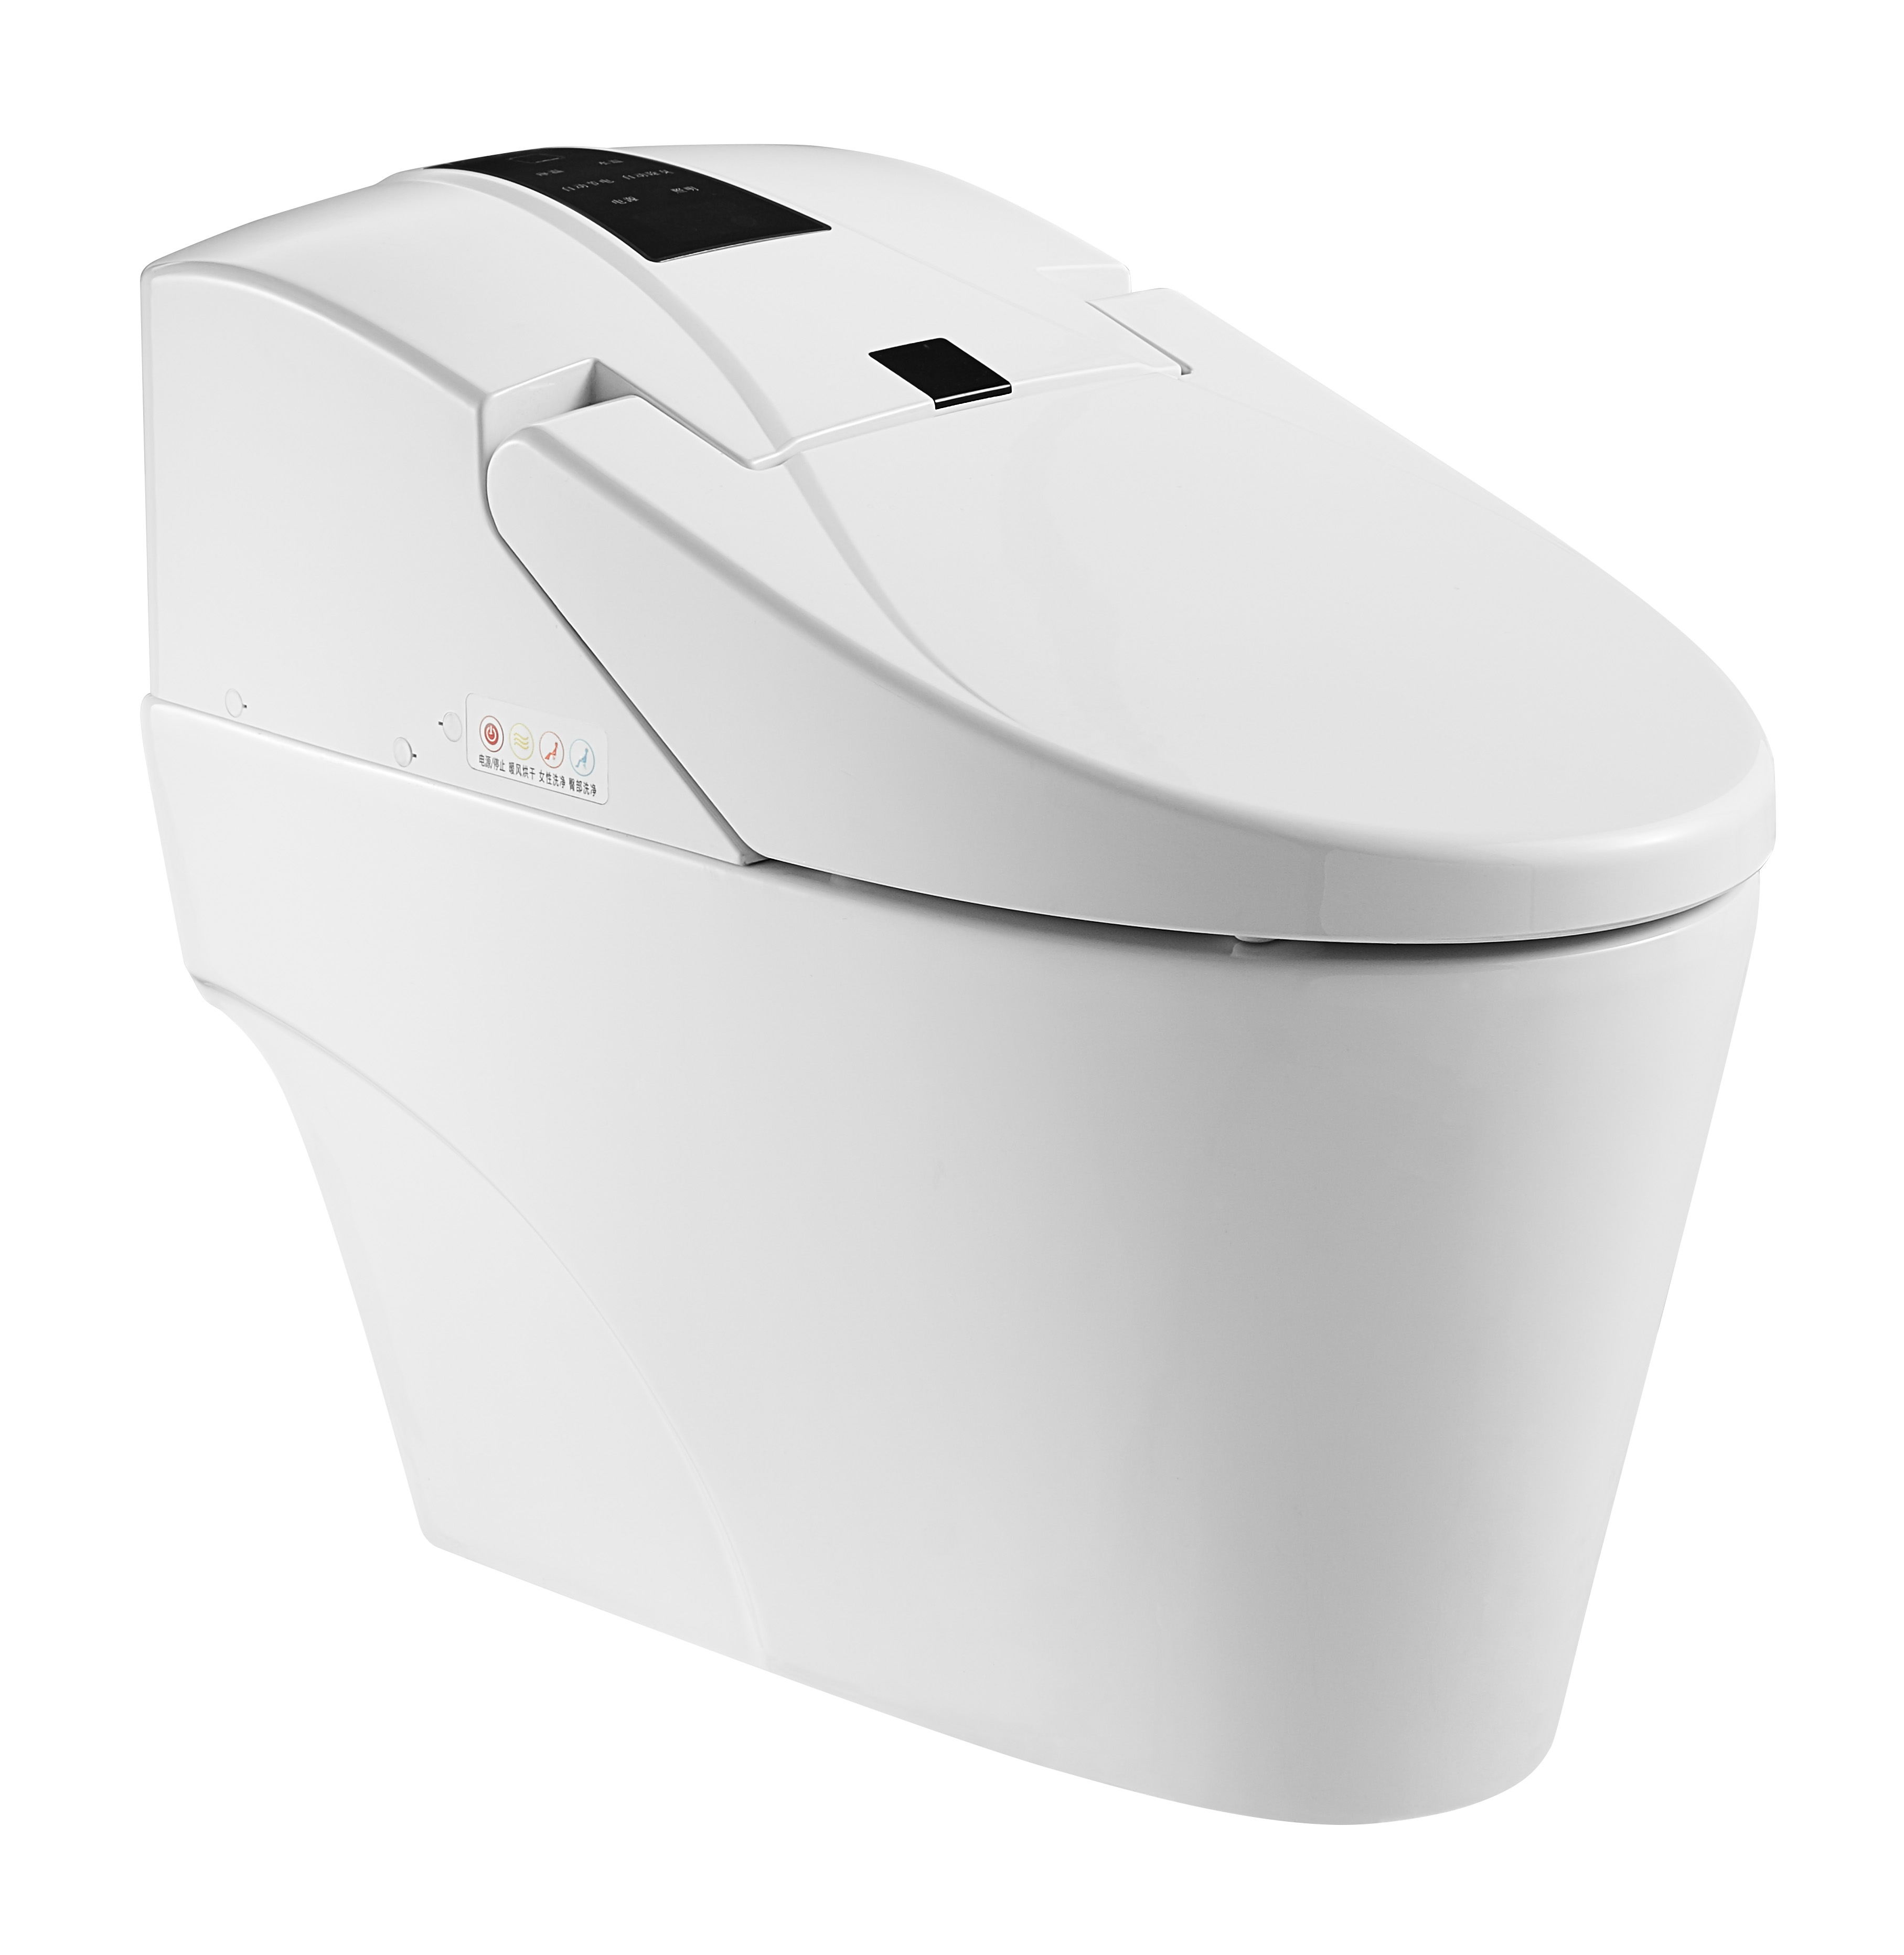 Hygienic Warm Water Cleaning Electronic WC Bidet Toilet ZJS-05